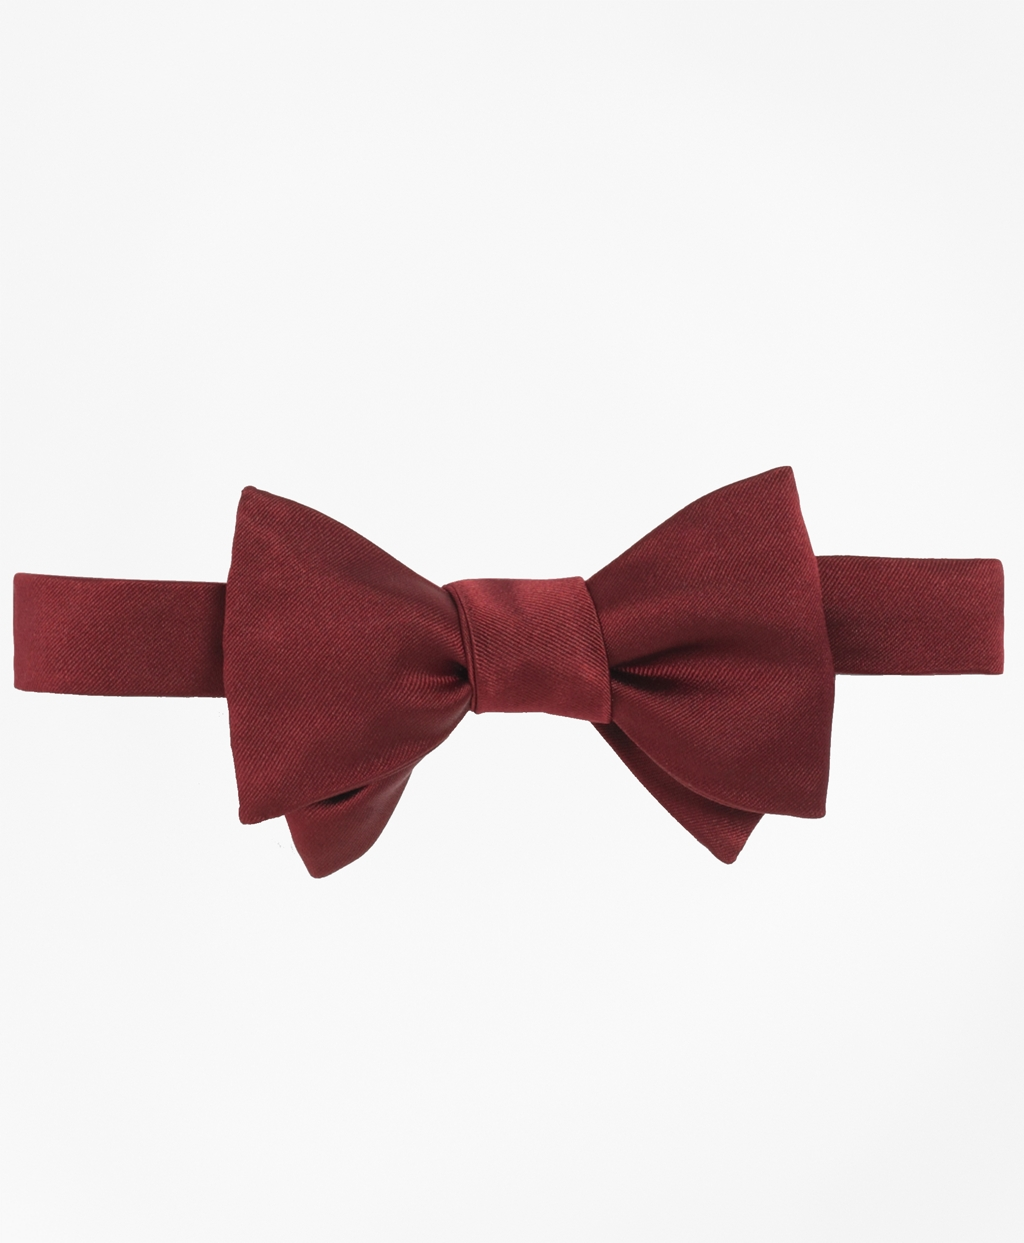 New 1920s Style Ties and Bowties Brooks Brothers Mens Butterfly Self-Tie Bow Tie $89.50 AT vintagedancer.com